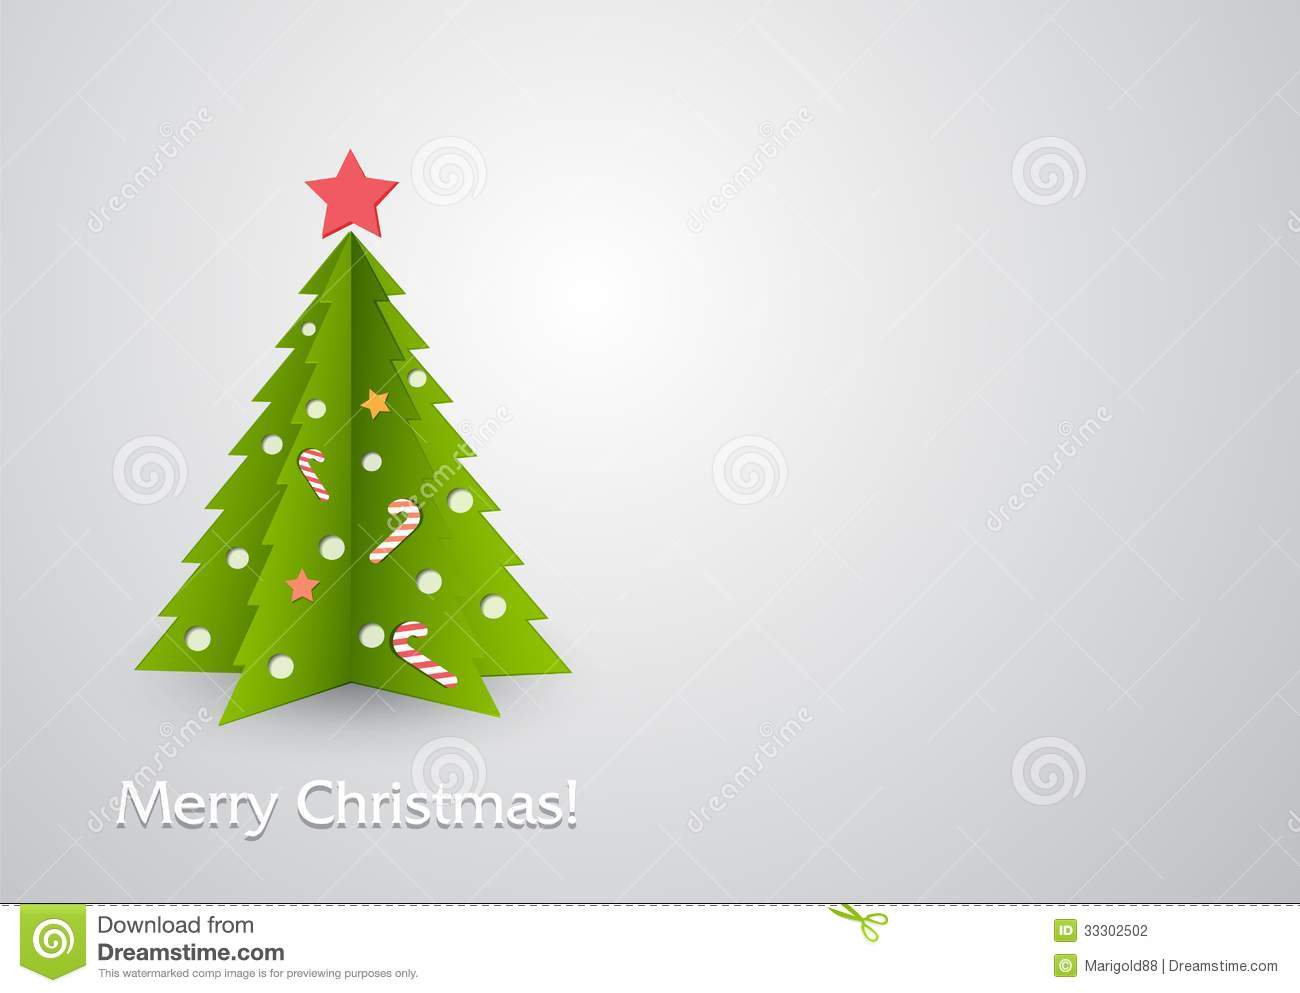 Vector illustration Christmas tree in red background. EPS 10.